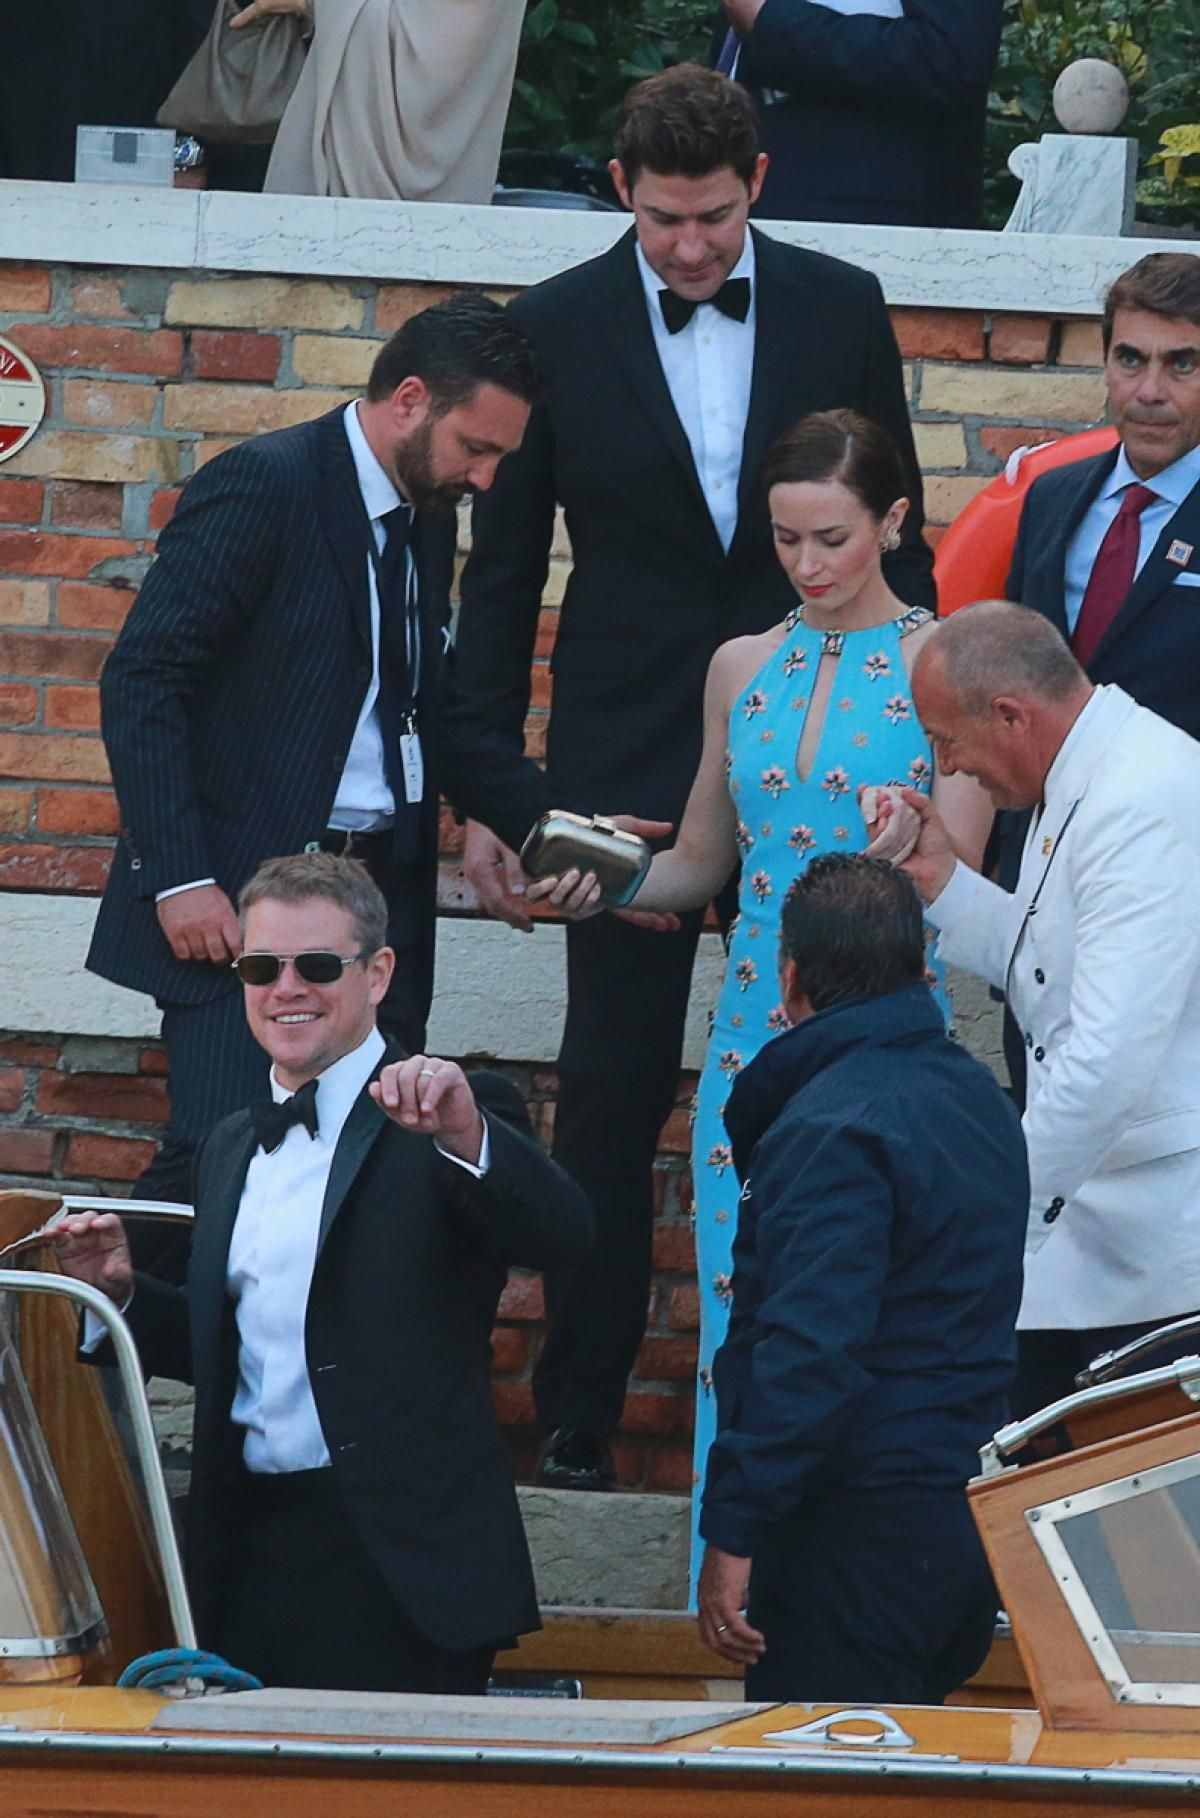 Matt Damon And Emily Blunt Photos Happy Anniversary George And Amal Clooney George Clooney Wedding Matt Damon George Clooney